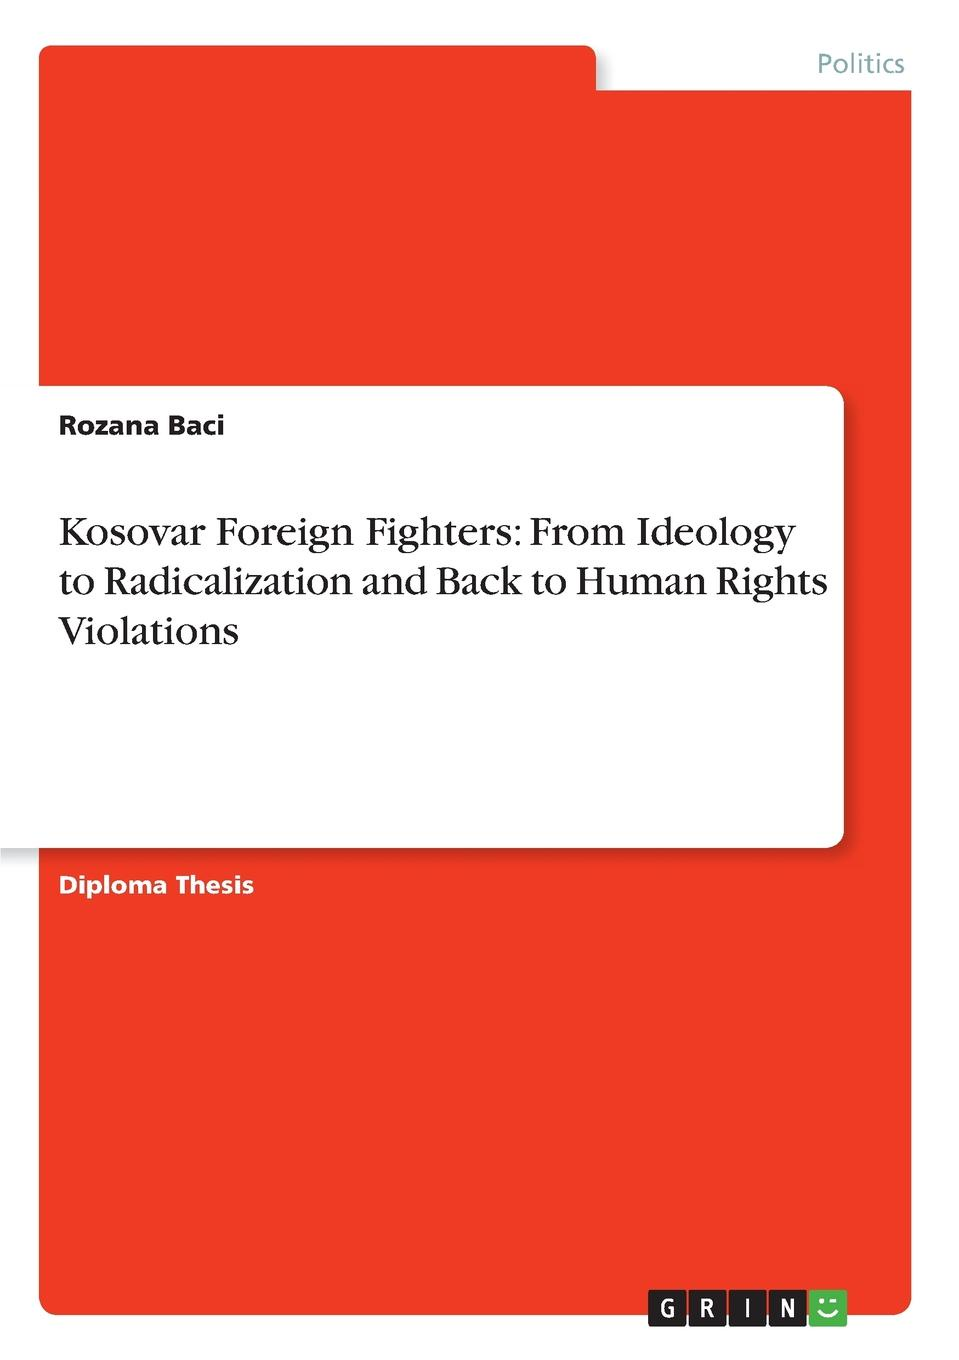 Фото - Rozana Baci Kosovar Foreign Fighters. From Ideology to Radicalization and Back to Human Rights Violations проводной и dect телефон foreign products vtech ds6671 3